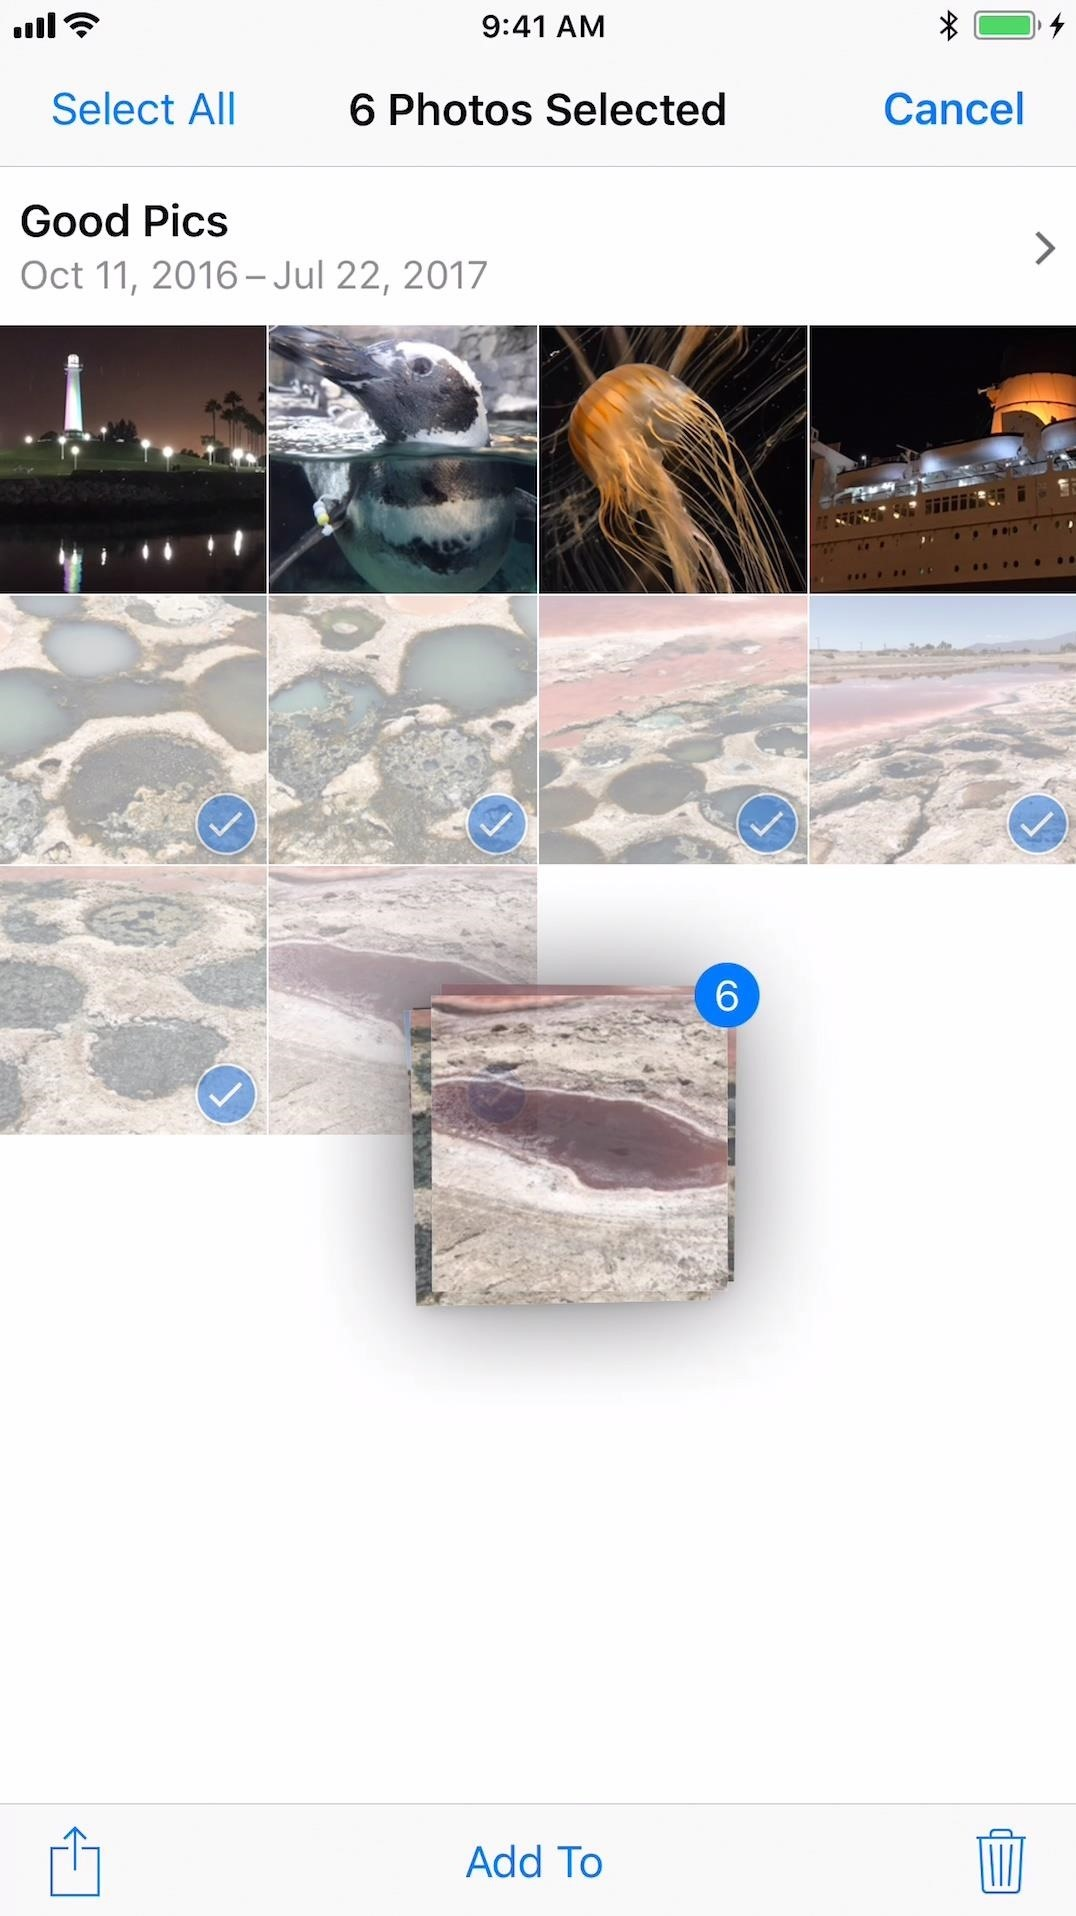 How to Drag & Drop Photos on Your iPhone in iOS 11